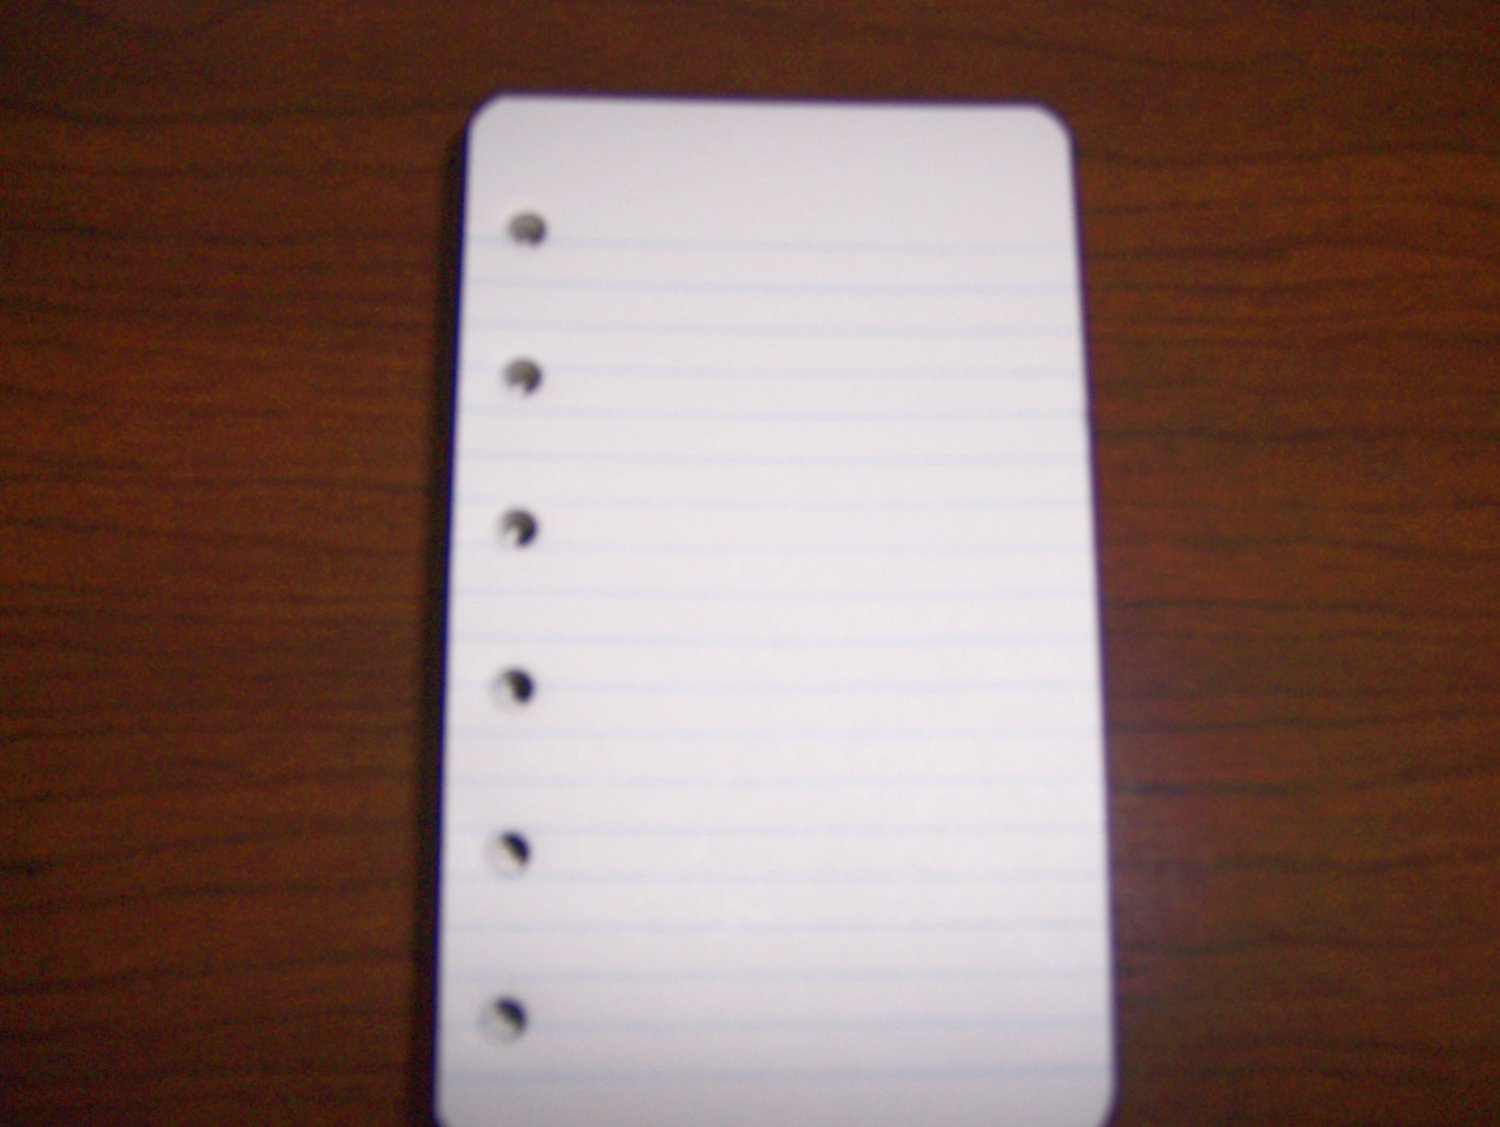 White Note Pads  3x5 Single Sheets With Holes To Fit Any Binder BNK957